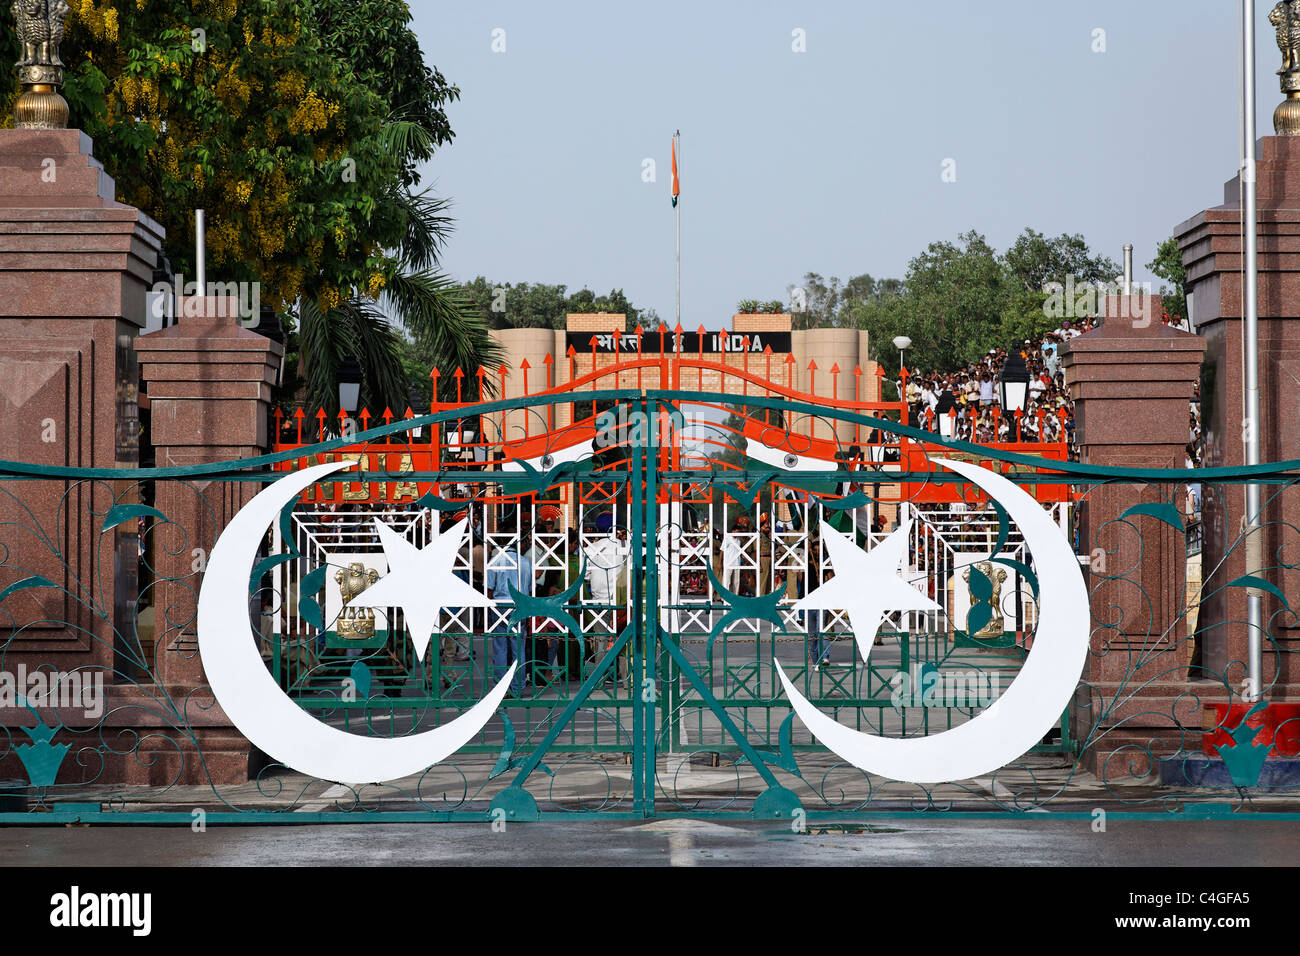 Pakistan - Punjab - Wagah - border gates between Pakistan and India - Stock Image